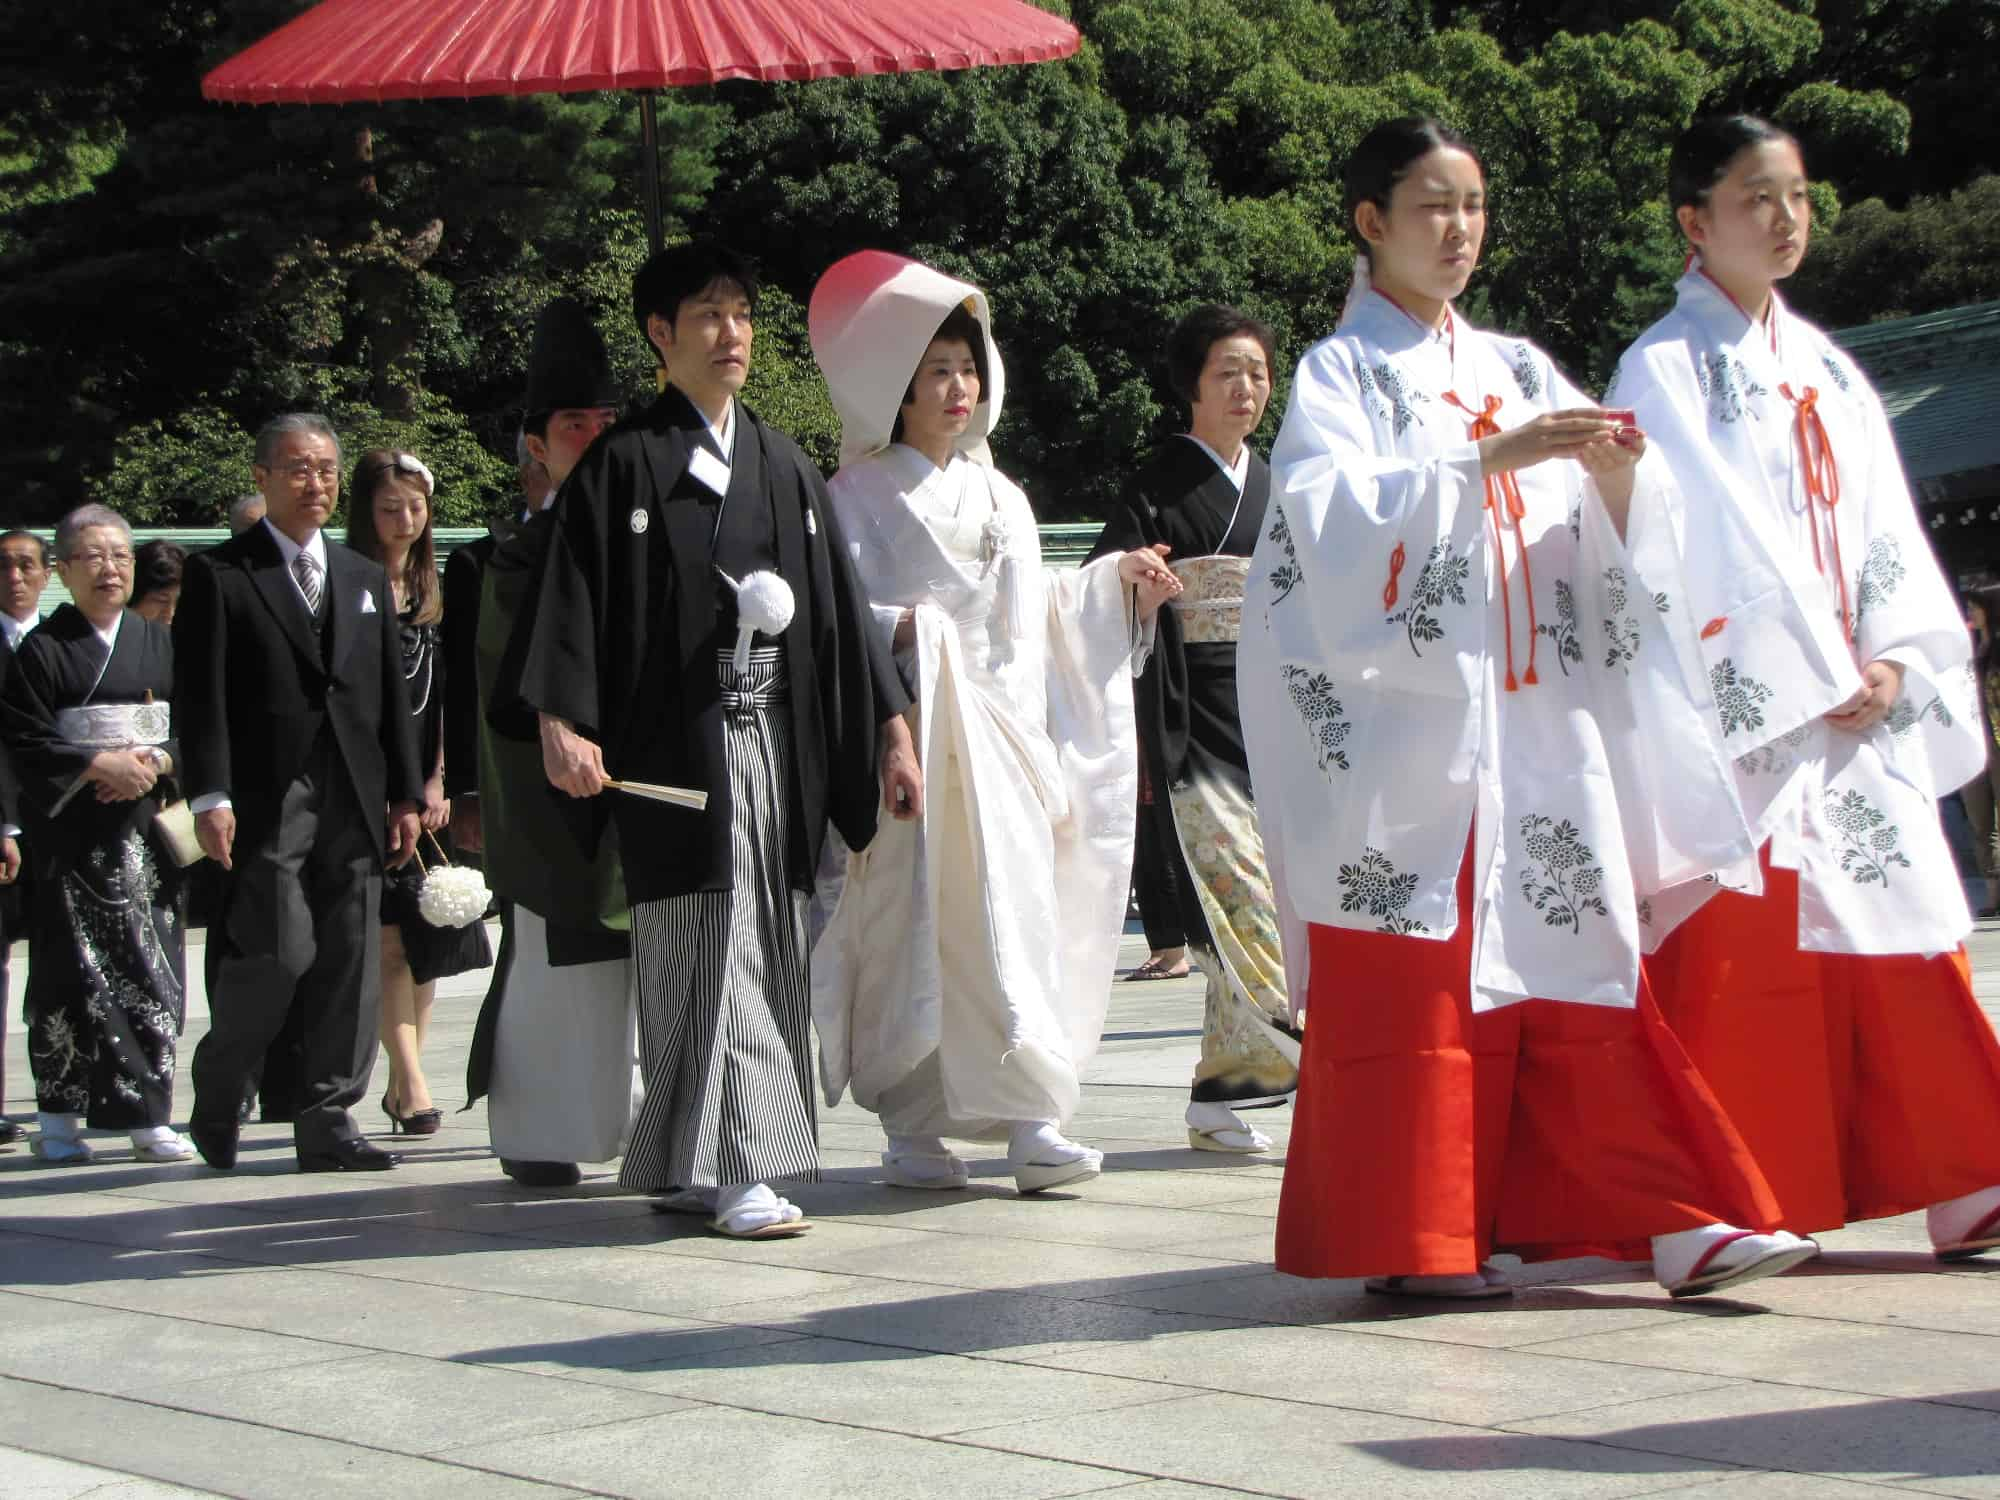 japanese wedding traditions - Asian Wedding Customs